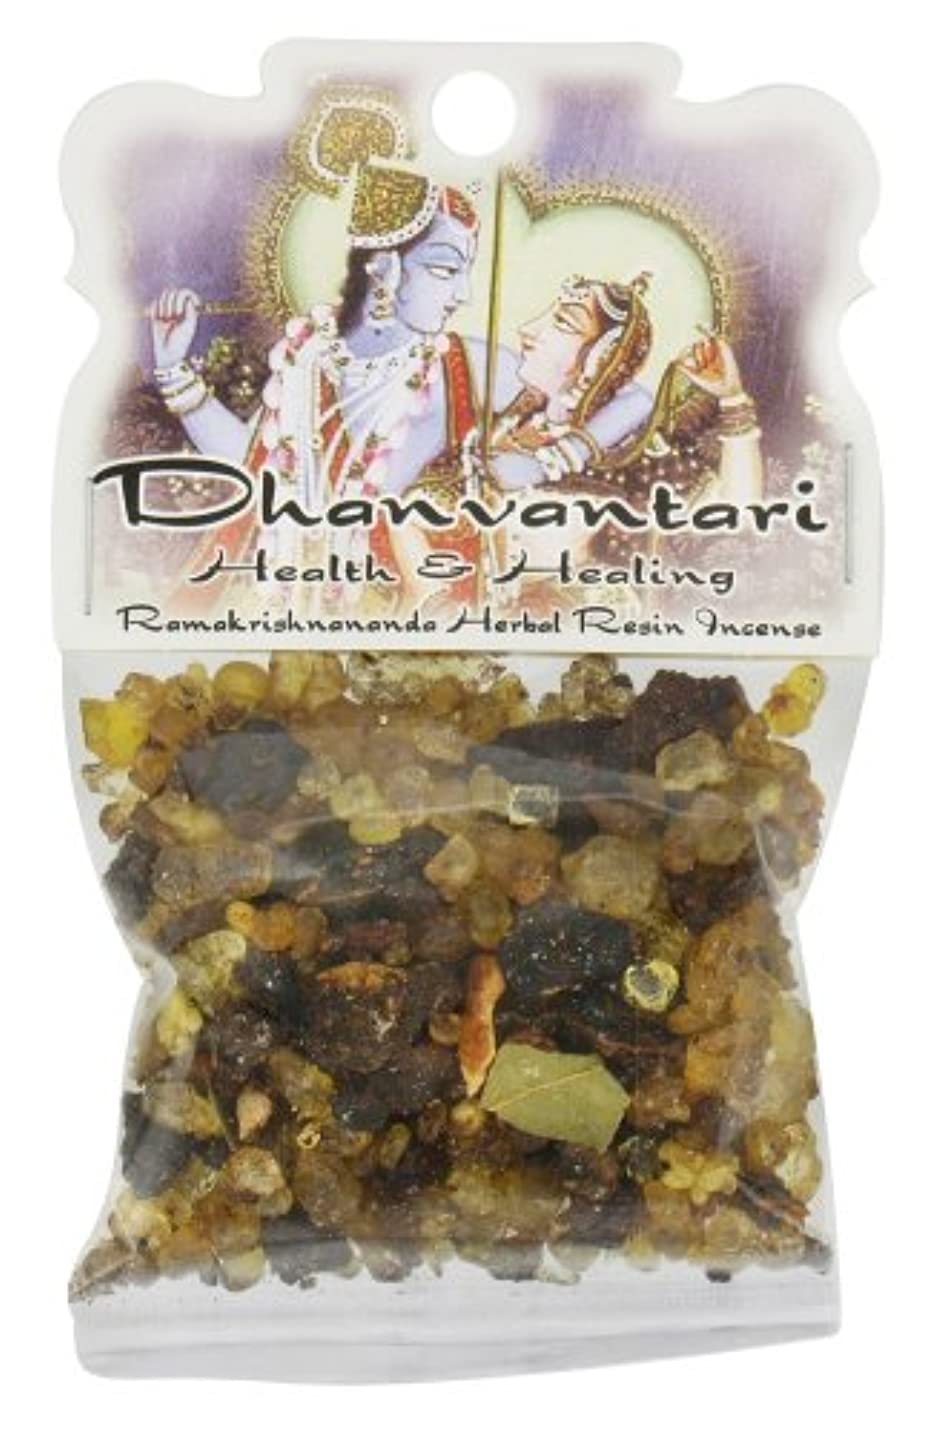 後悔郵便刺す樹脂Incense Dhanvantari – Health and Healing – 1.2ozバッグ